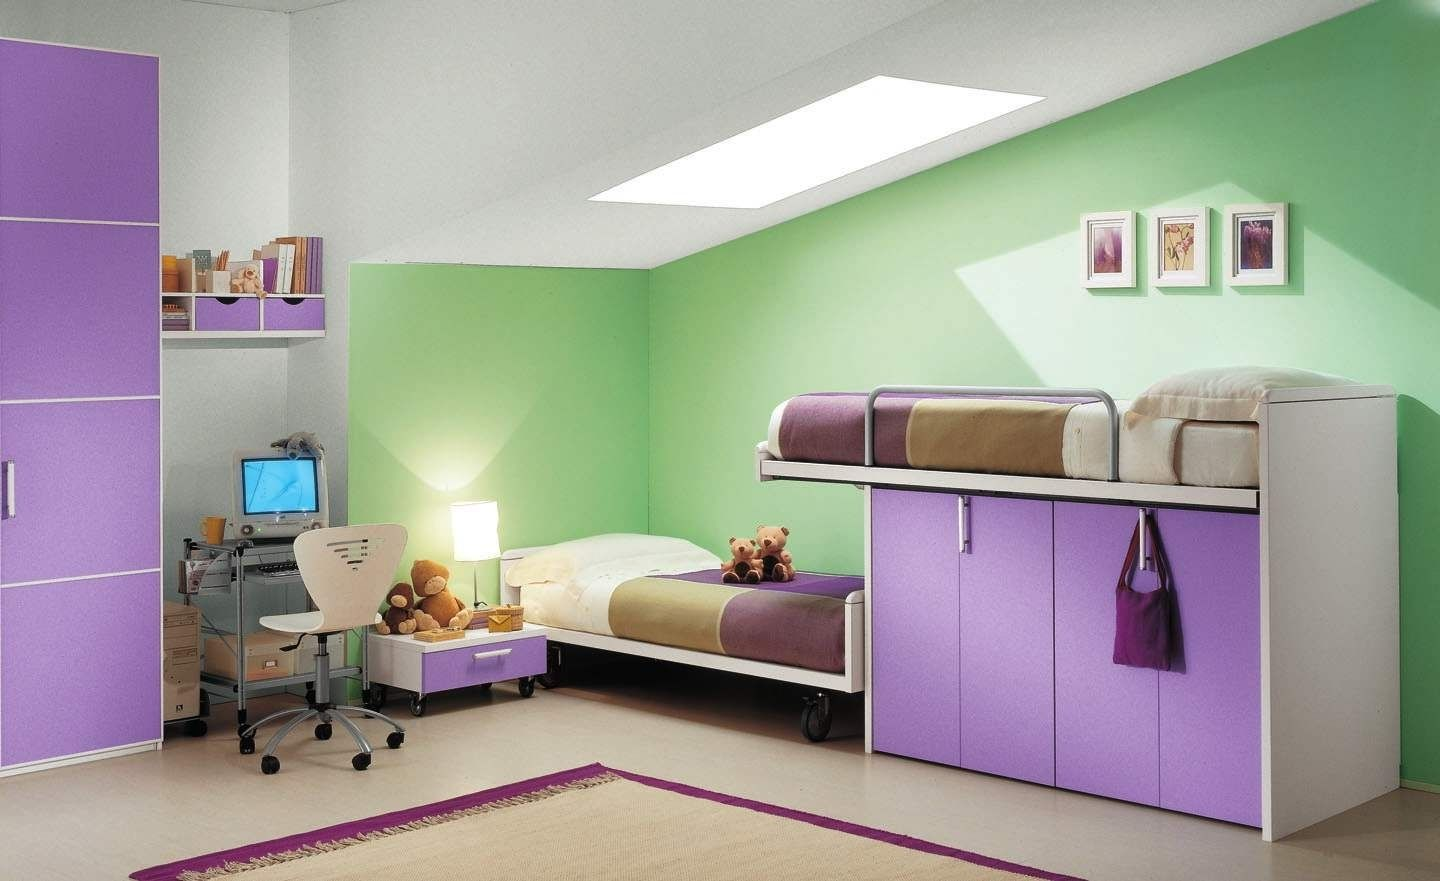 Purple Bedroom Ideas For Kids Part - 26: Kids Room Kids Bedroom Themes Purple Luxury Kids Room Designs With In Pink  And Purple Kids